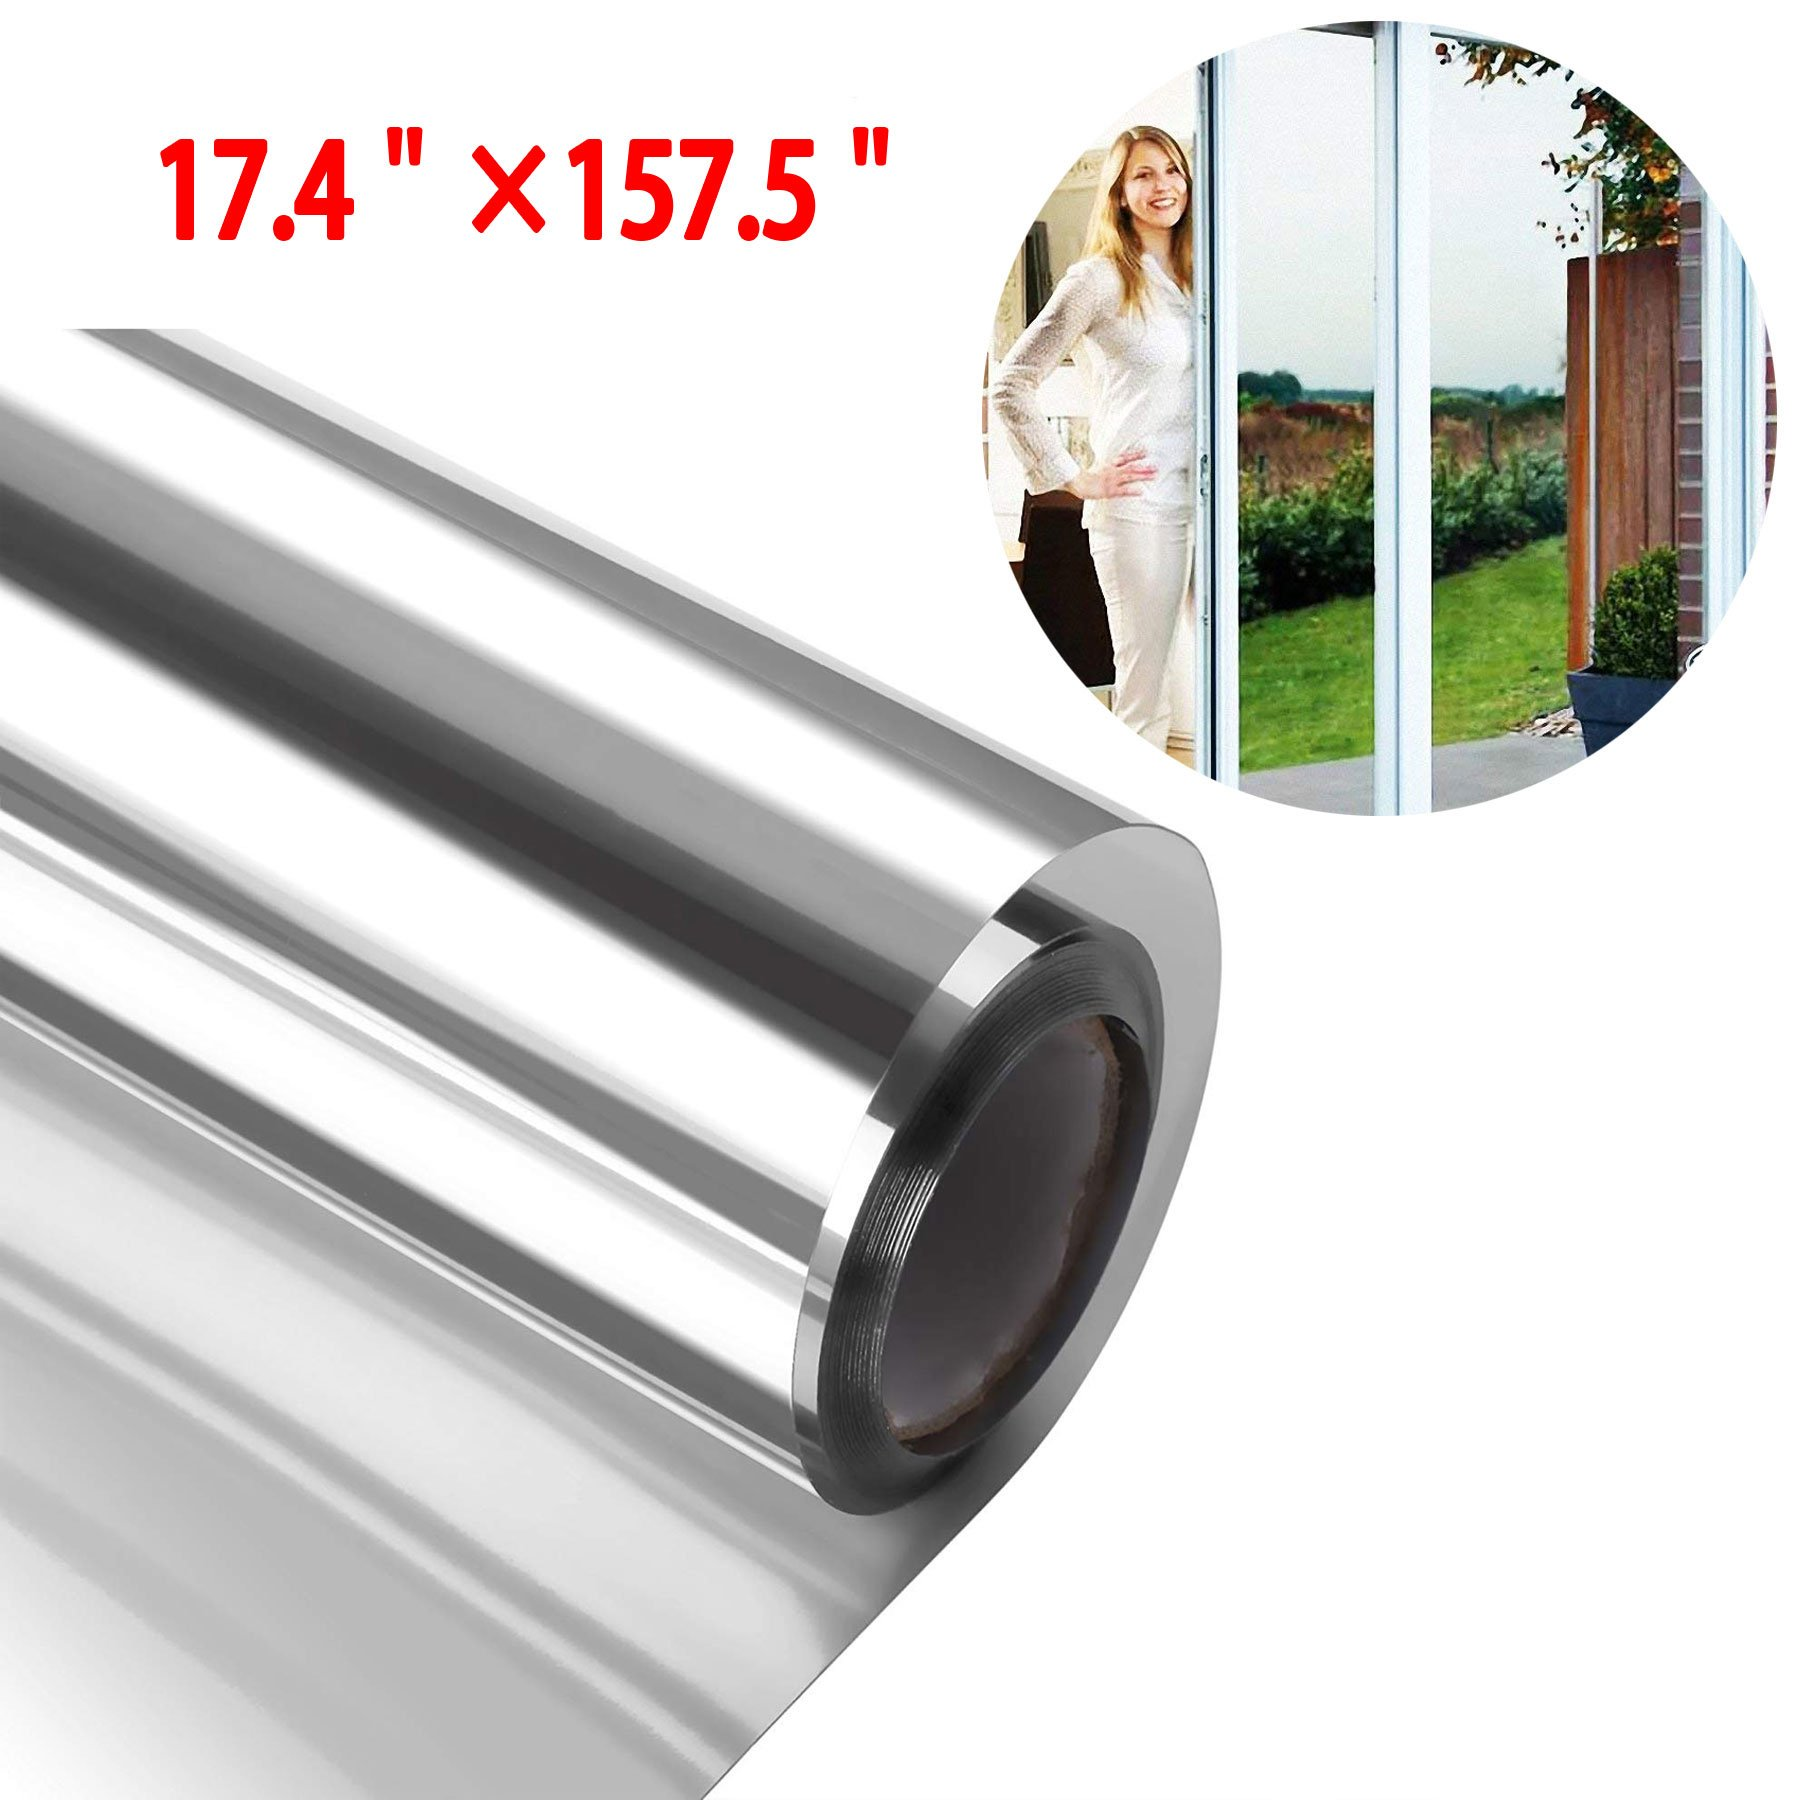 Originalidad One Way Window Film Anti UV Static Cling Window Film Mirrot Tint Window Film - Removale Decorative Heat Control Privacy Glass Tint for Home/Office Windows (17.4'' x 157.5'', Sliver)